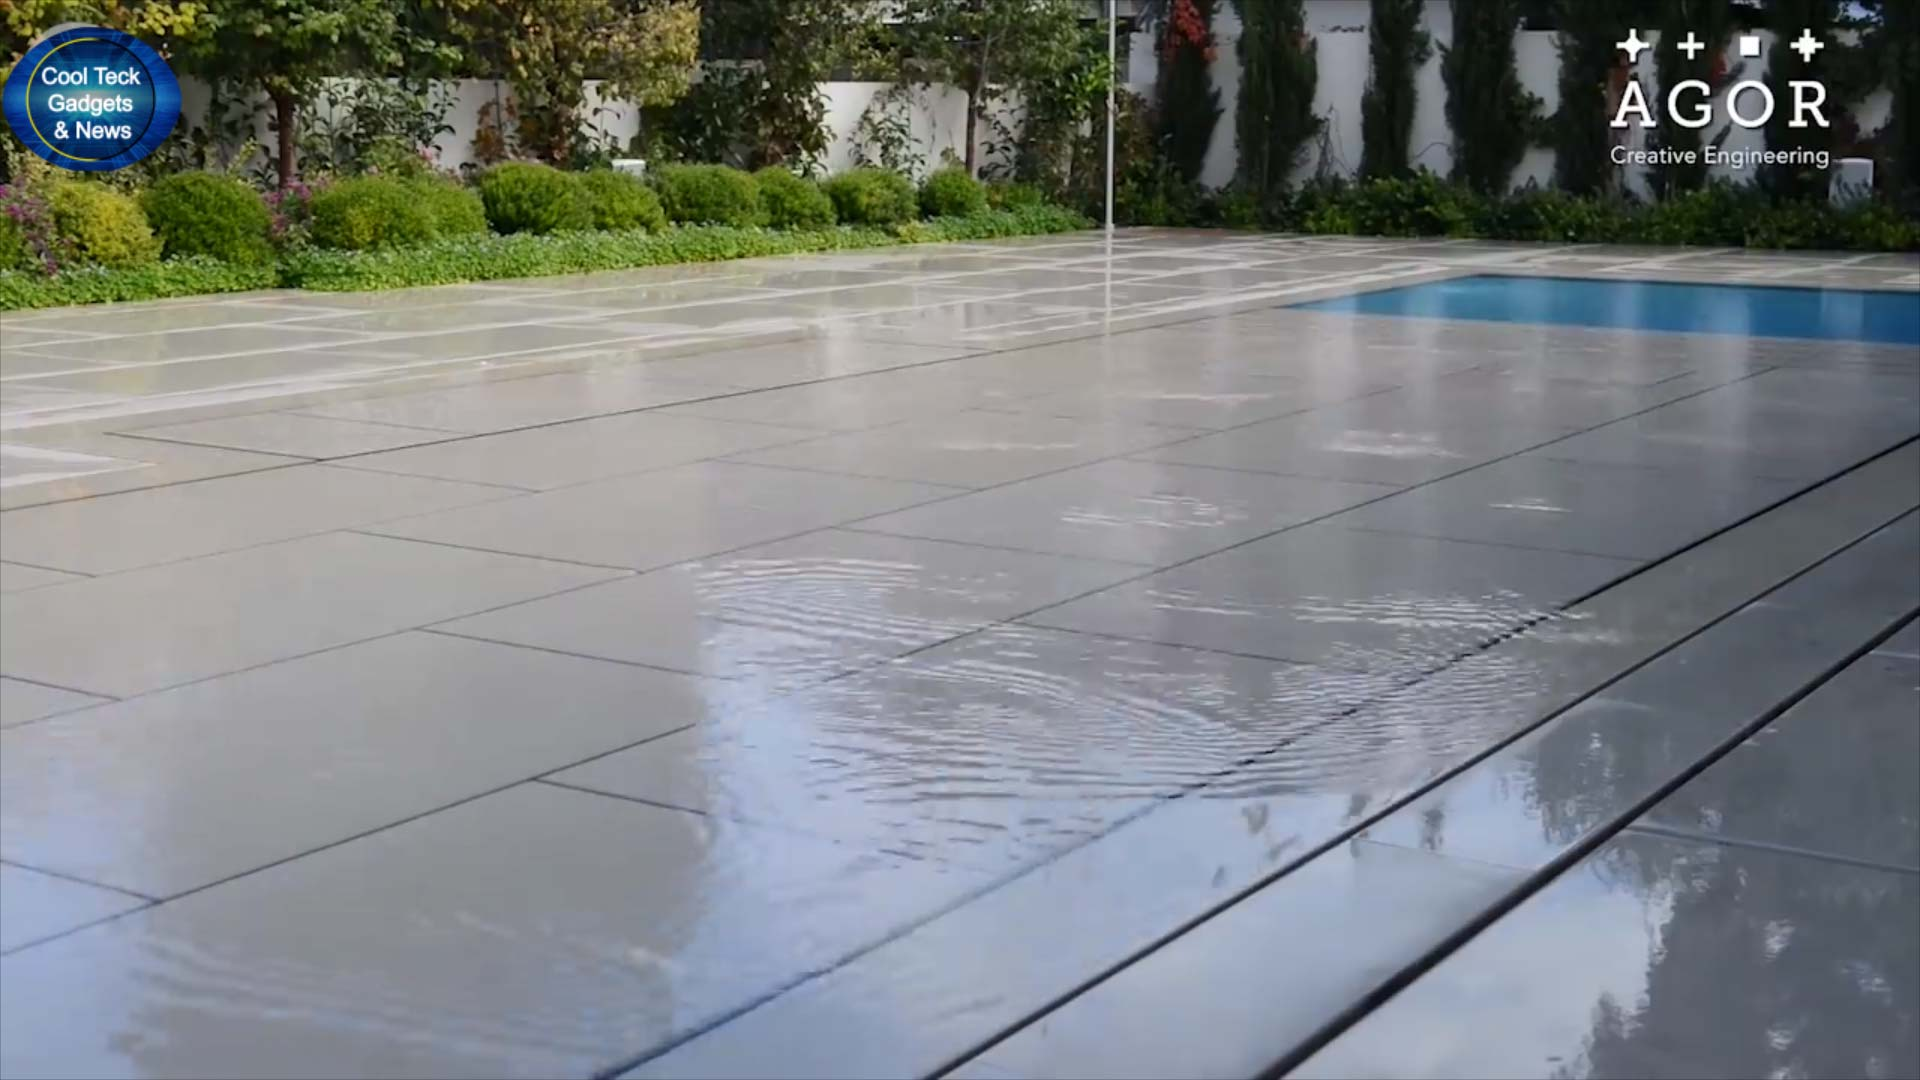 Agor swimming pool Stone paved floor